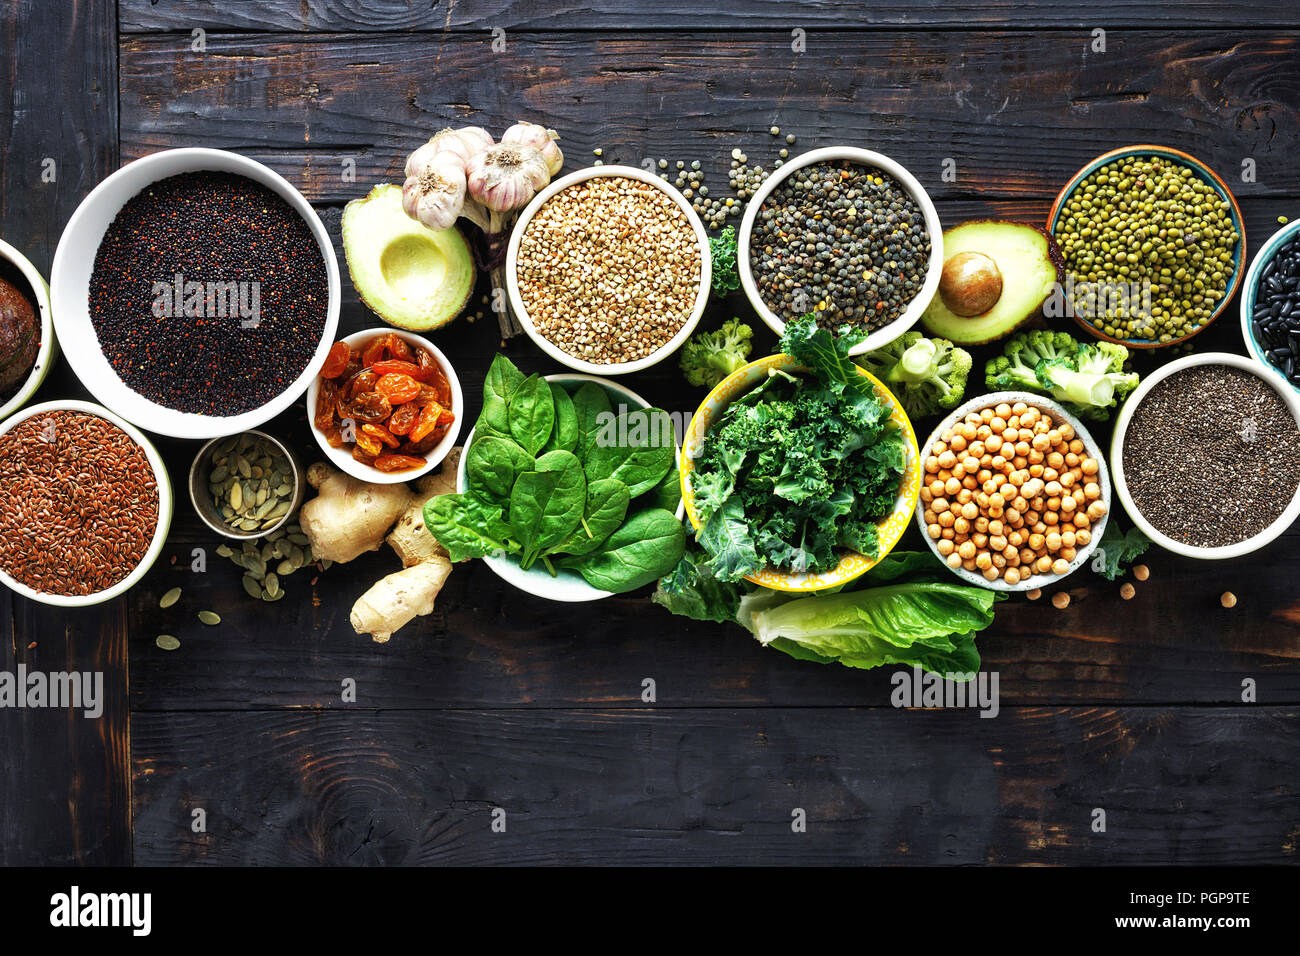 Vegetarian or diet food concept. Set raw seeds, cereals, beans, superfoods and green vegetables on dark wooden background top view - Stock Image